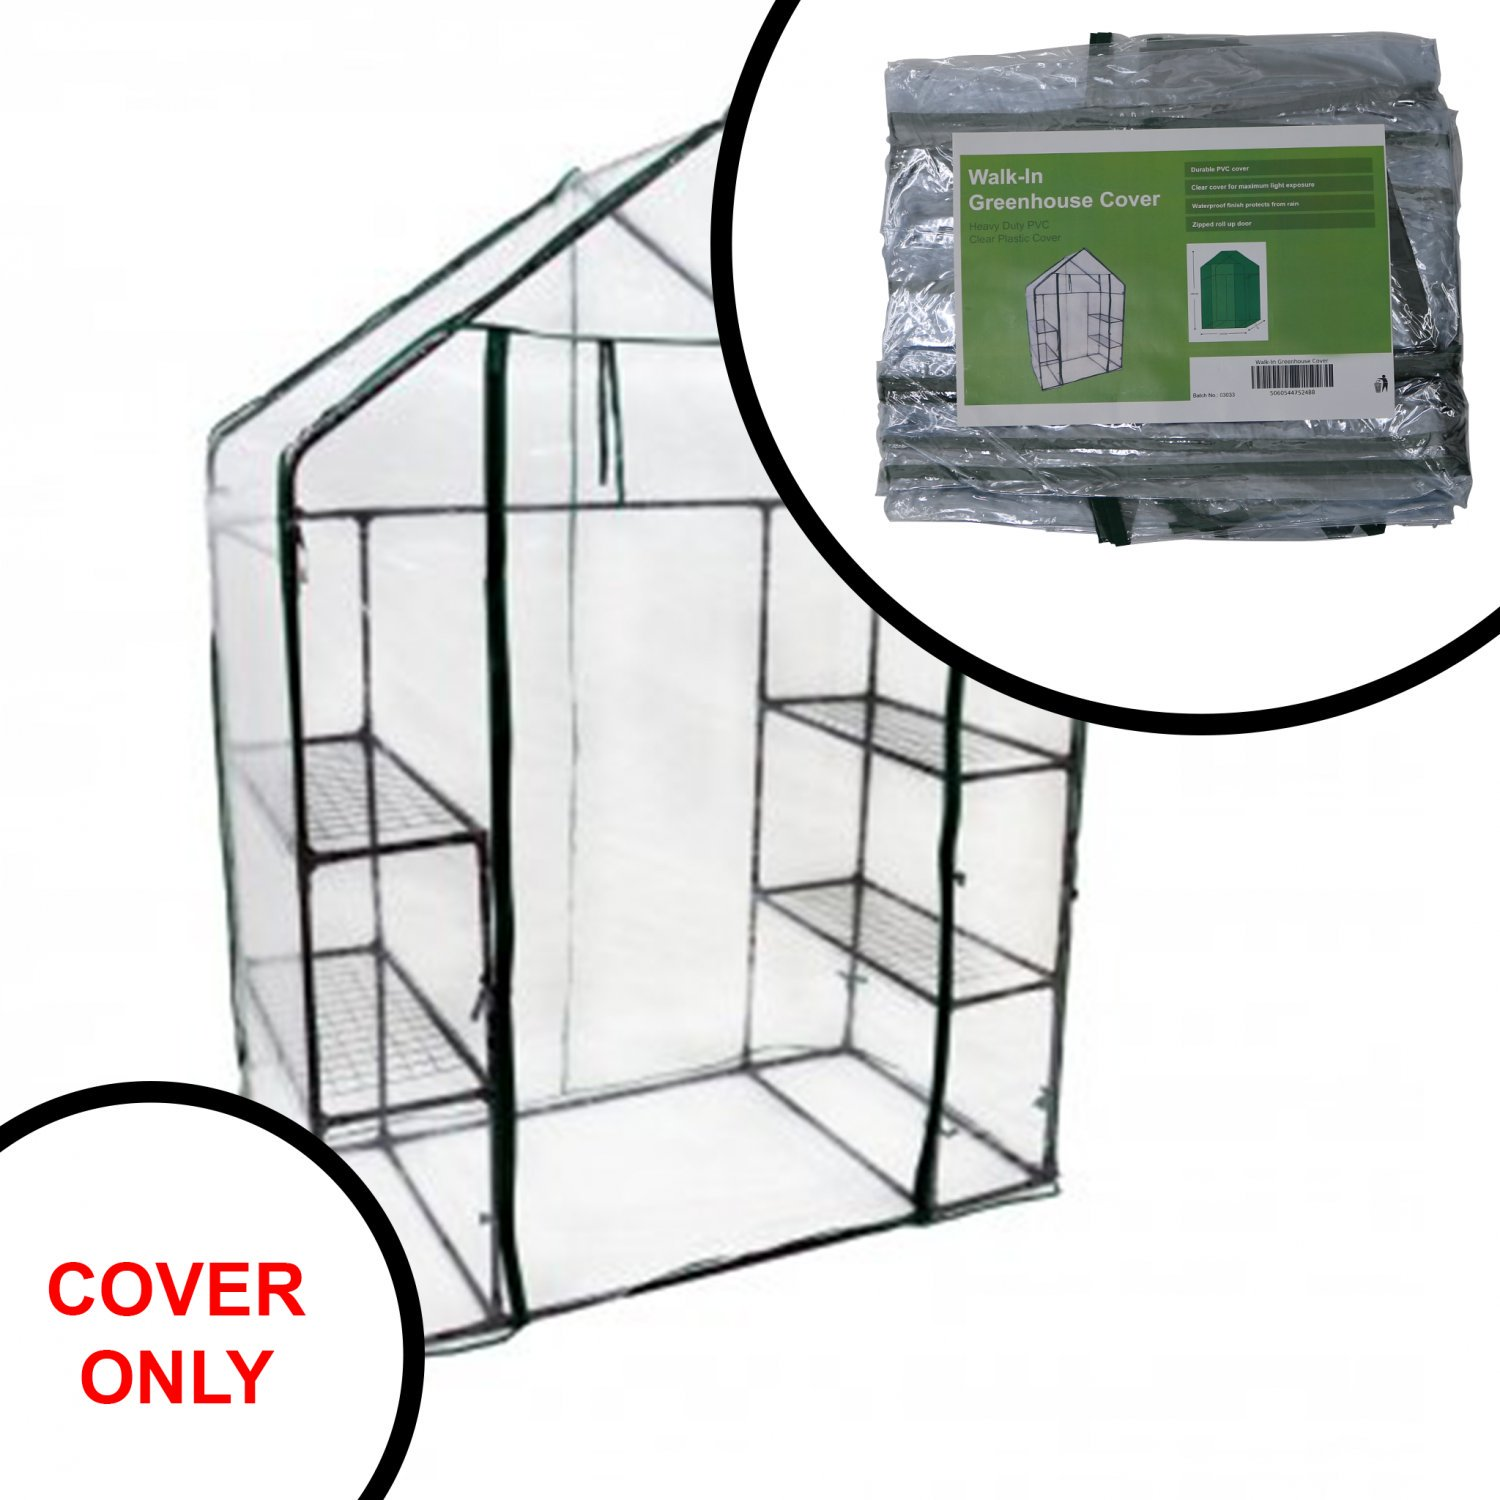 Replacement Spare PVC Cover for 3-Tier Walk-in Garden Greenhouse